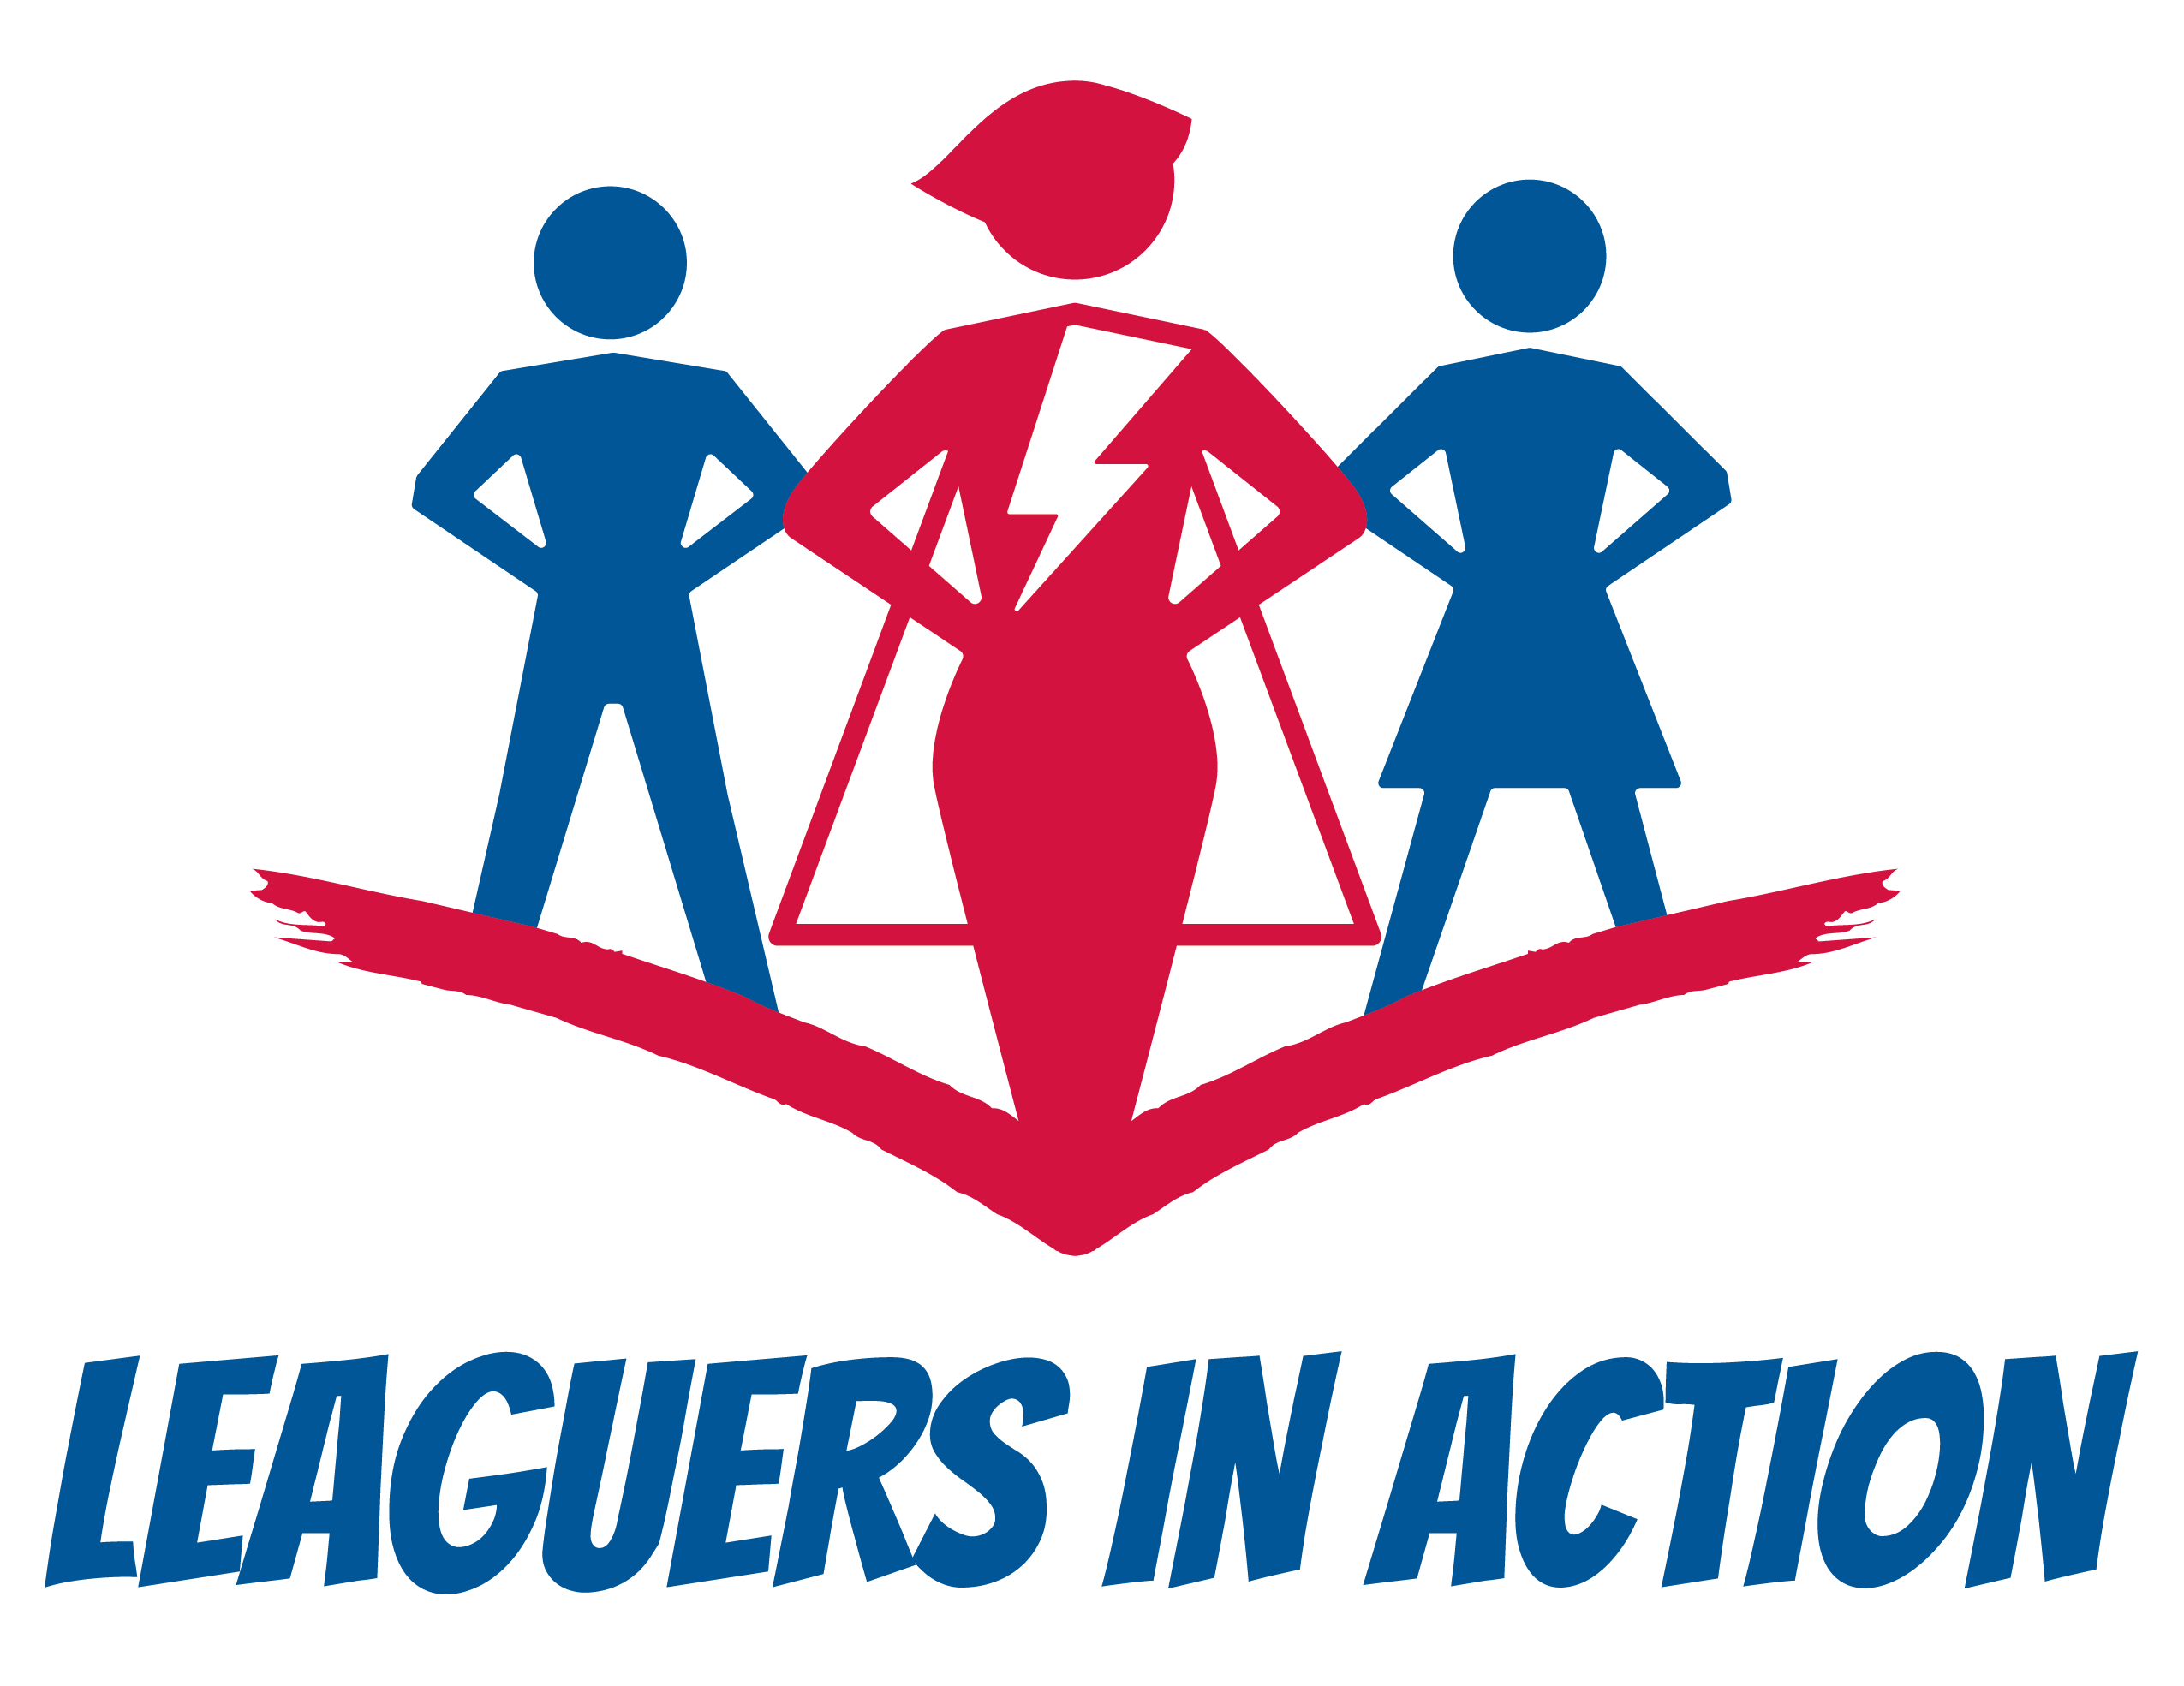 Leaguers In Action transparent logo